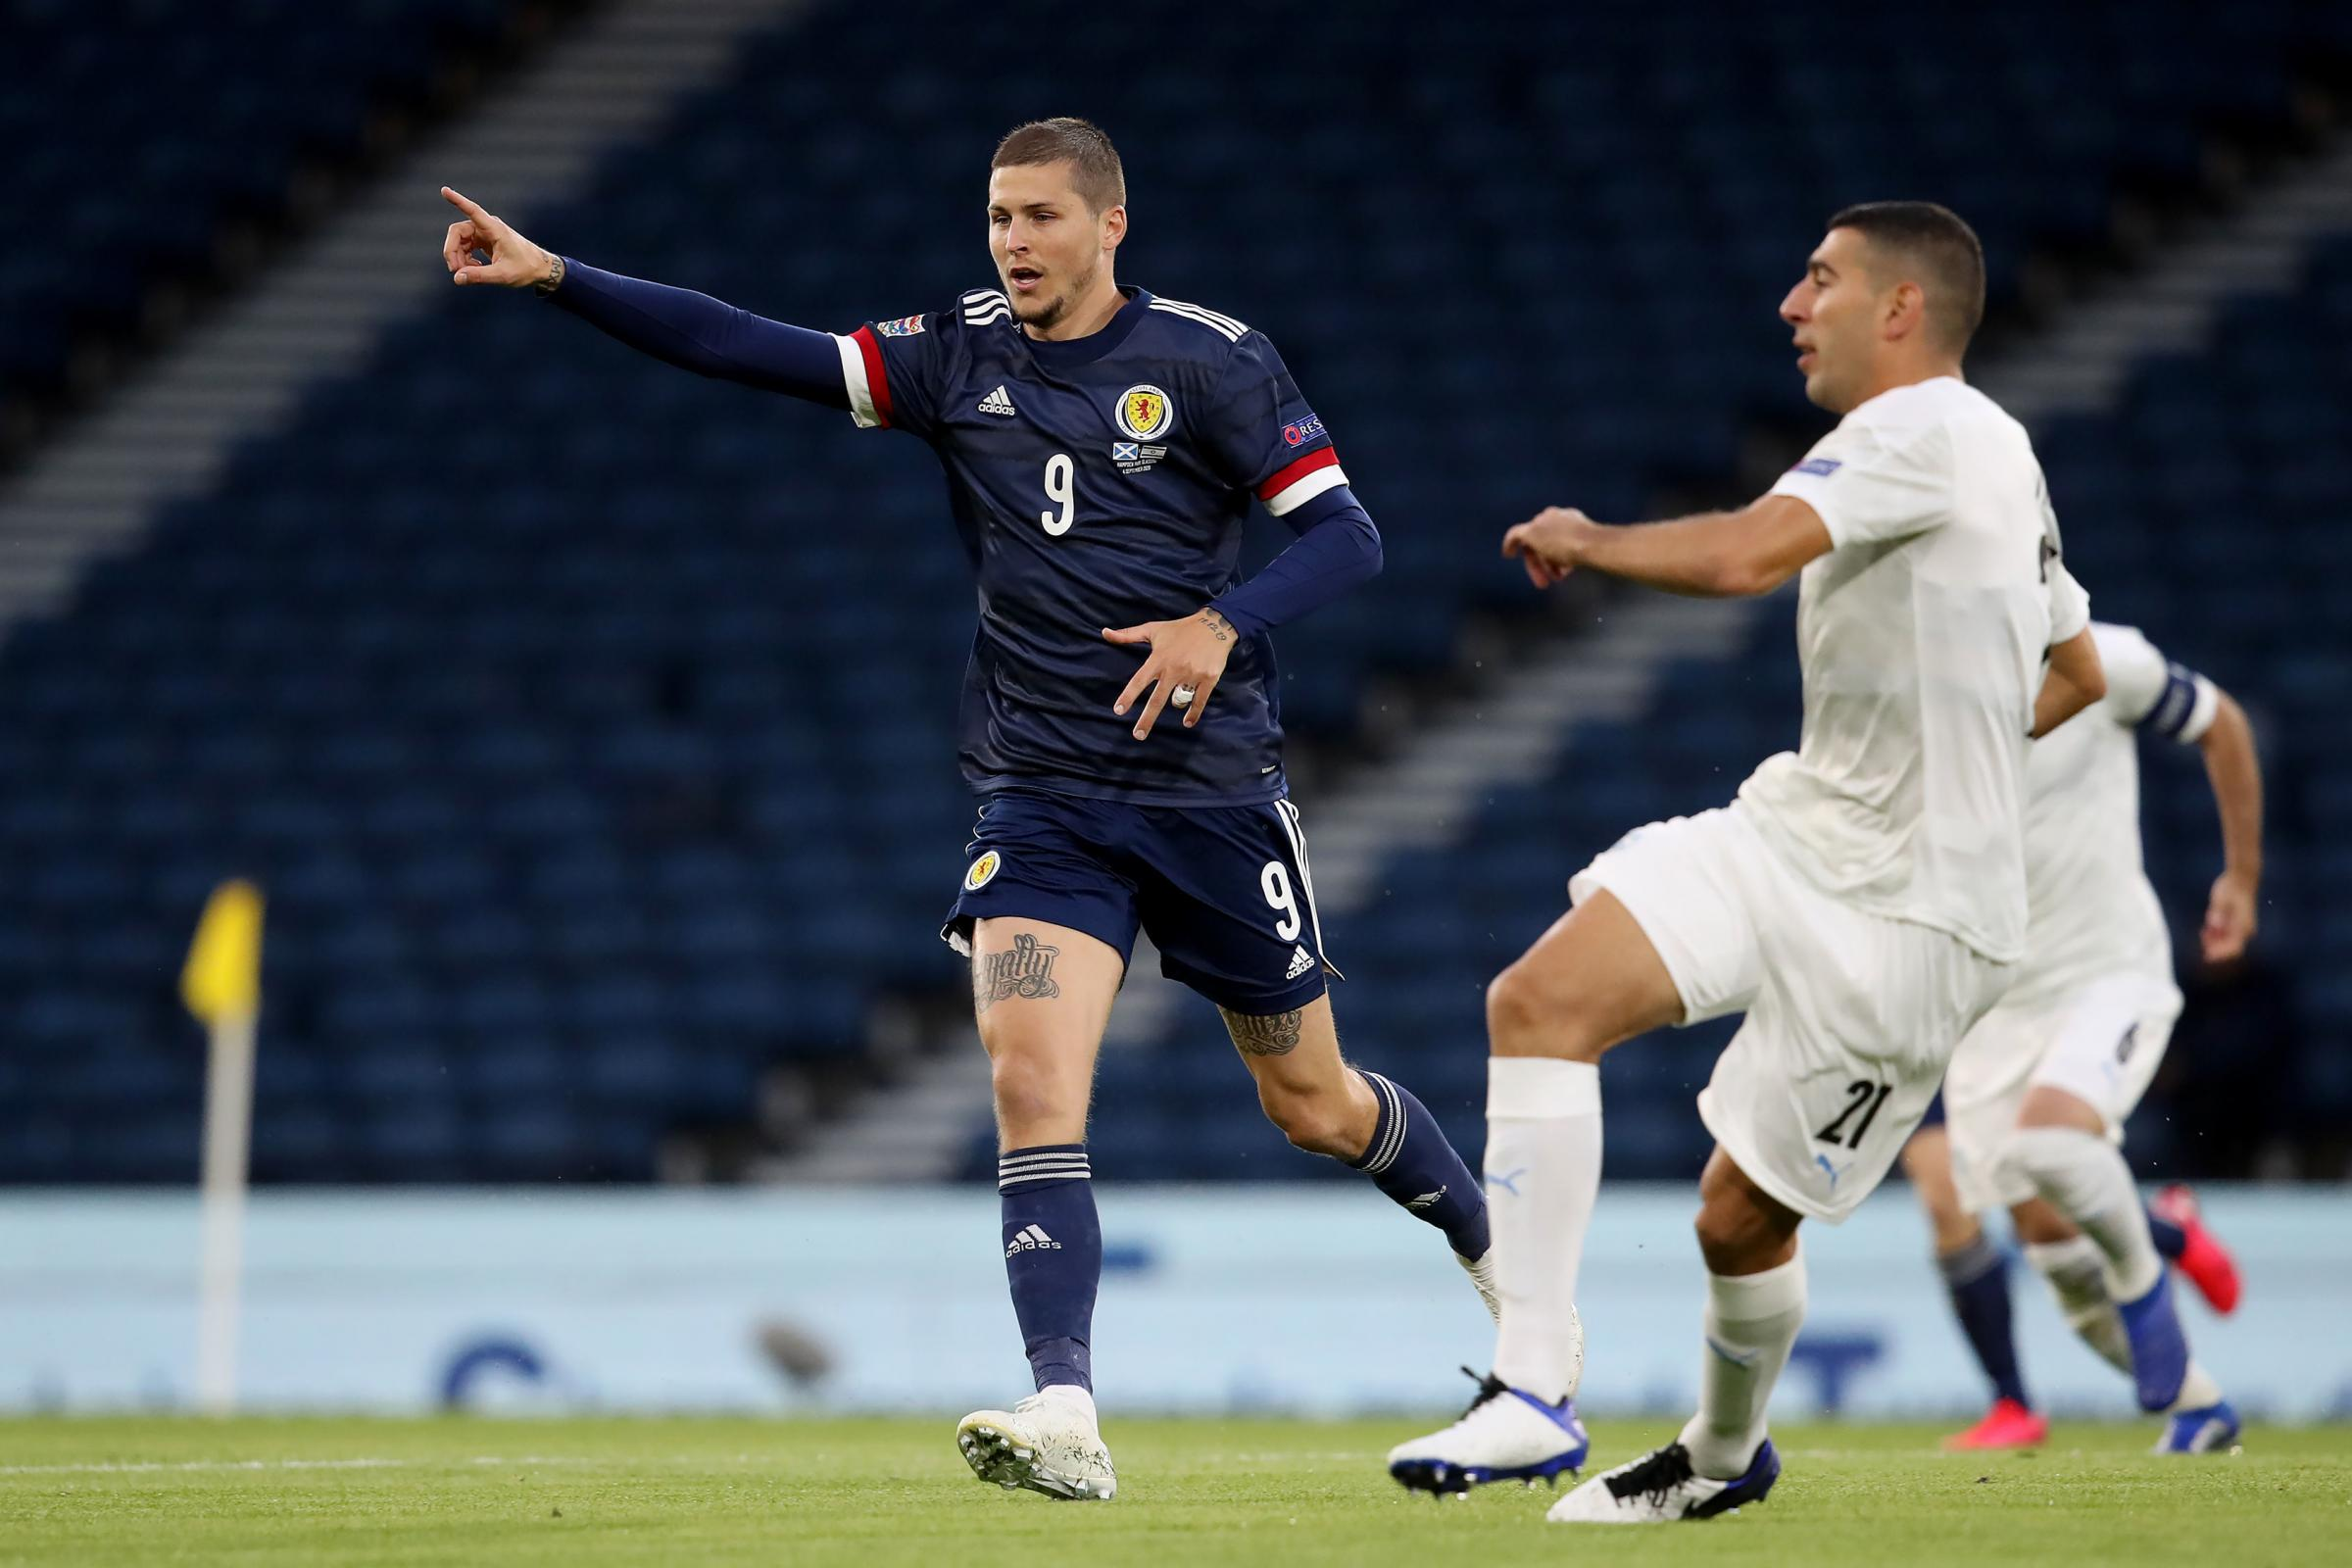 Scotland 1 Israel 1: Lyndon Dykes passes interview for one of the loneliest roles in football